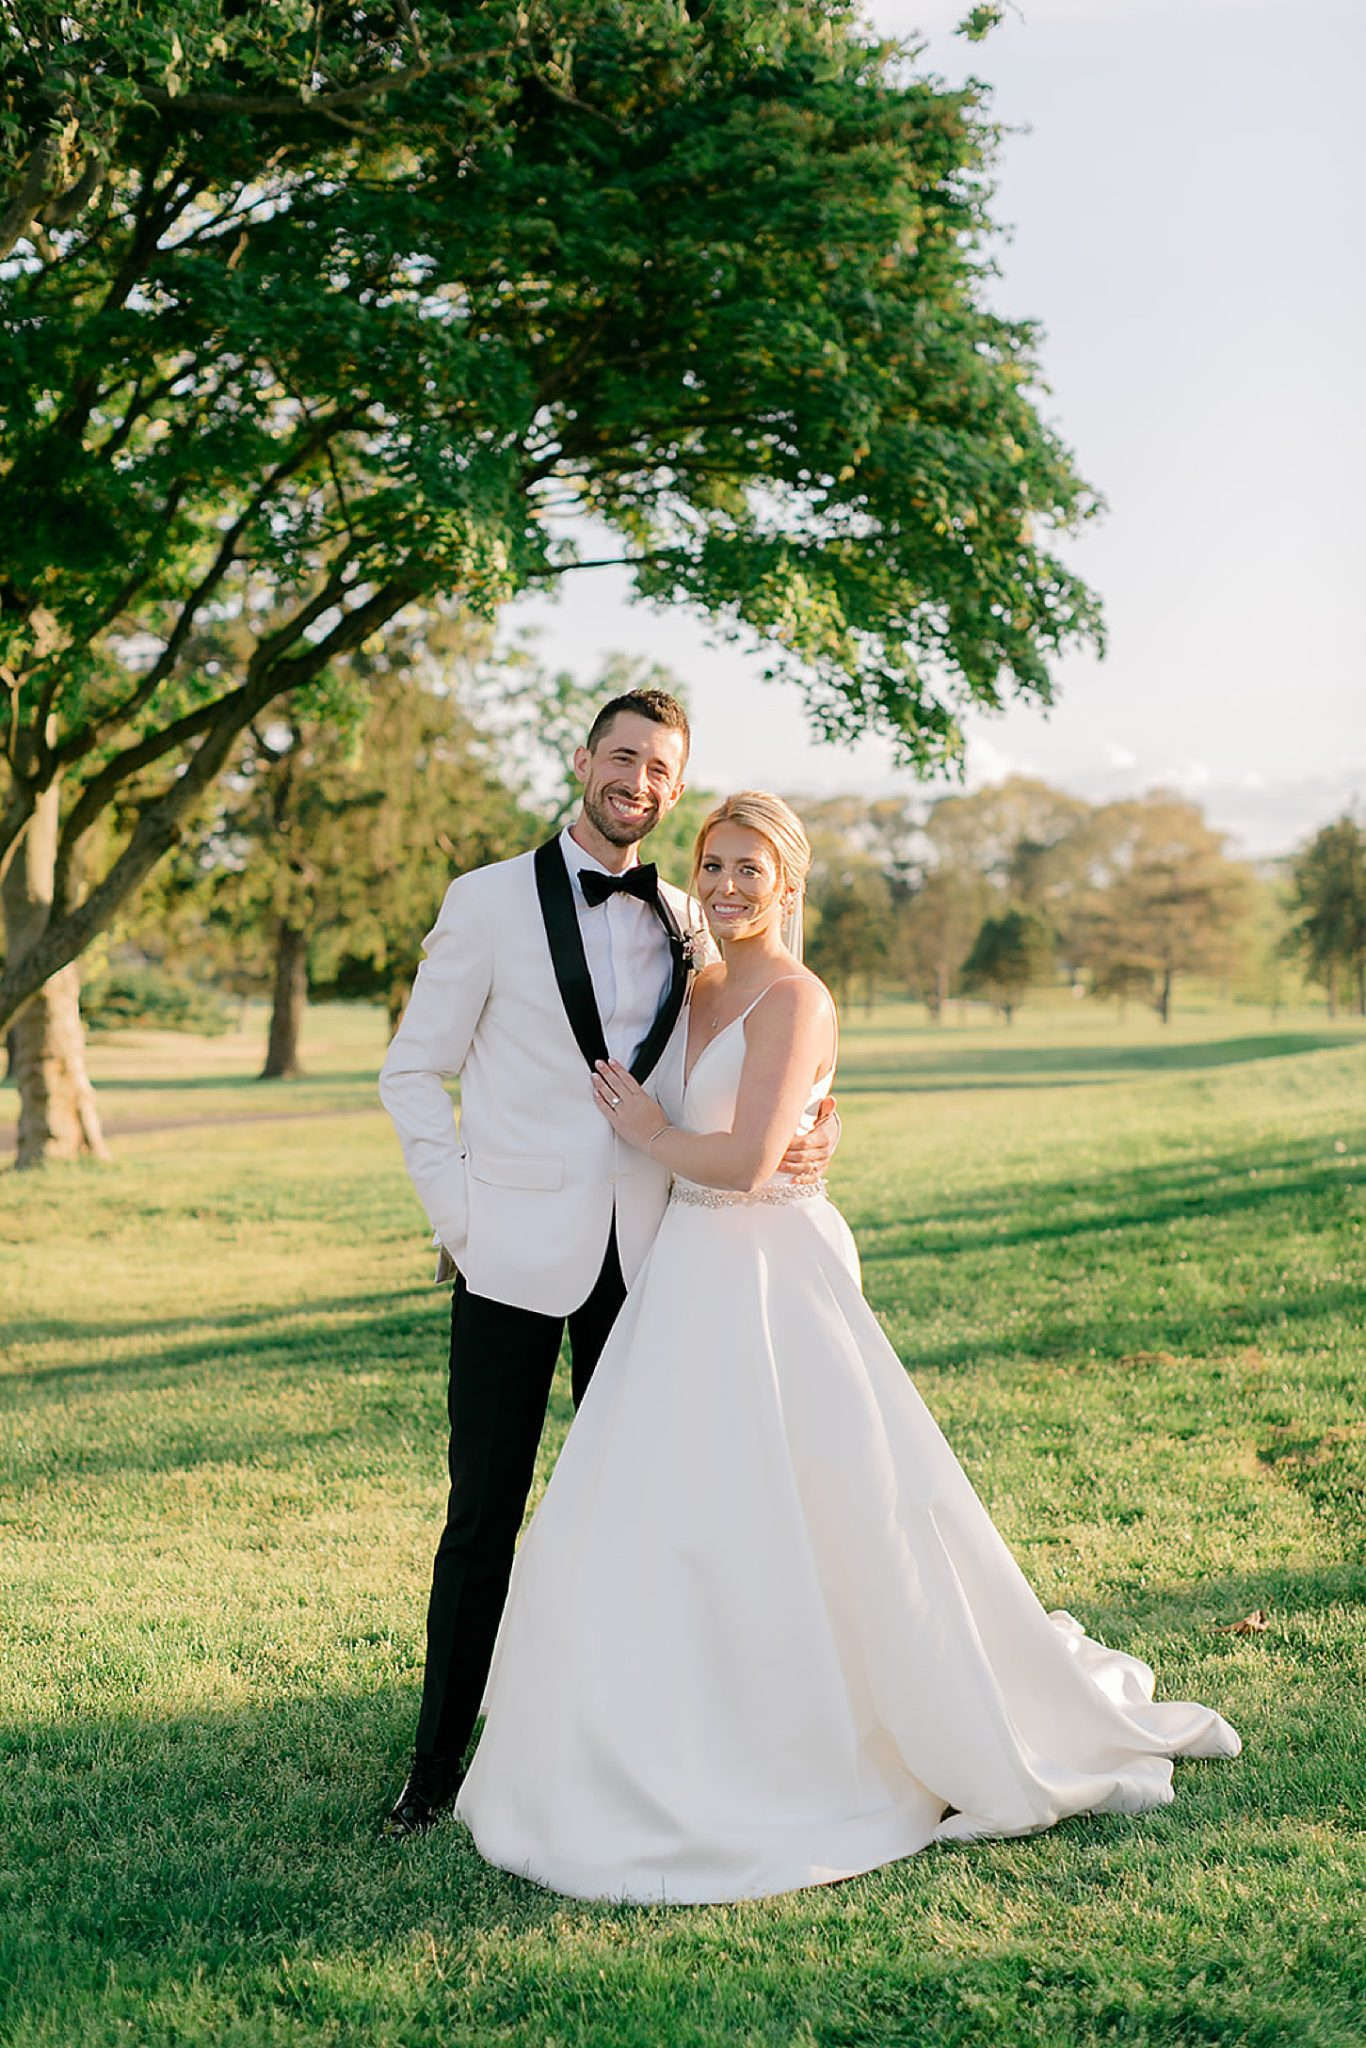 Linwood Country Club Summer Wedding Photography Studio by Magdalena Studios Jenn Kyle 0043 scaled